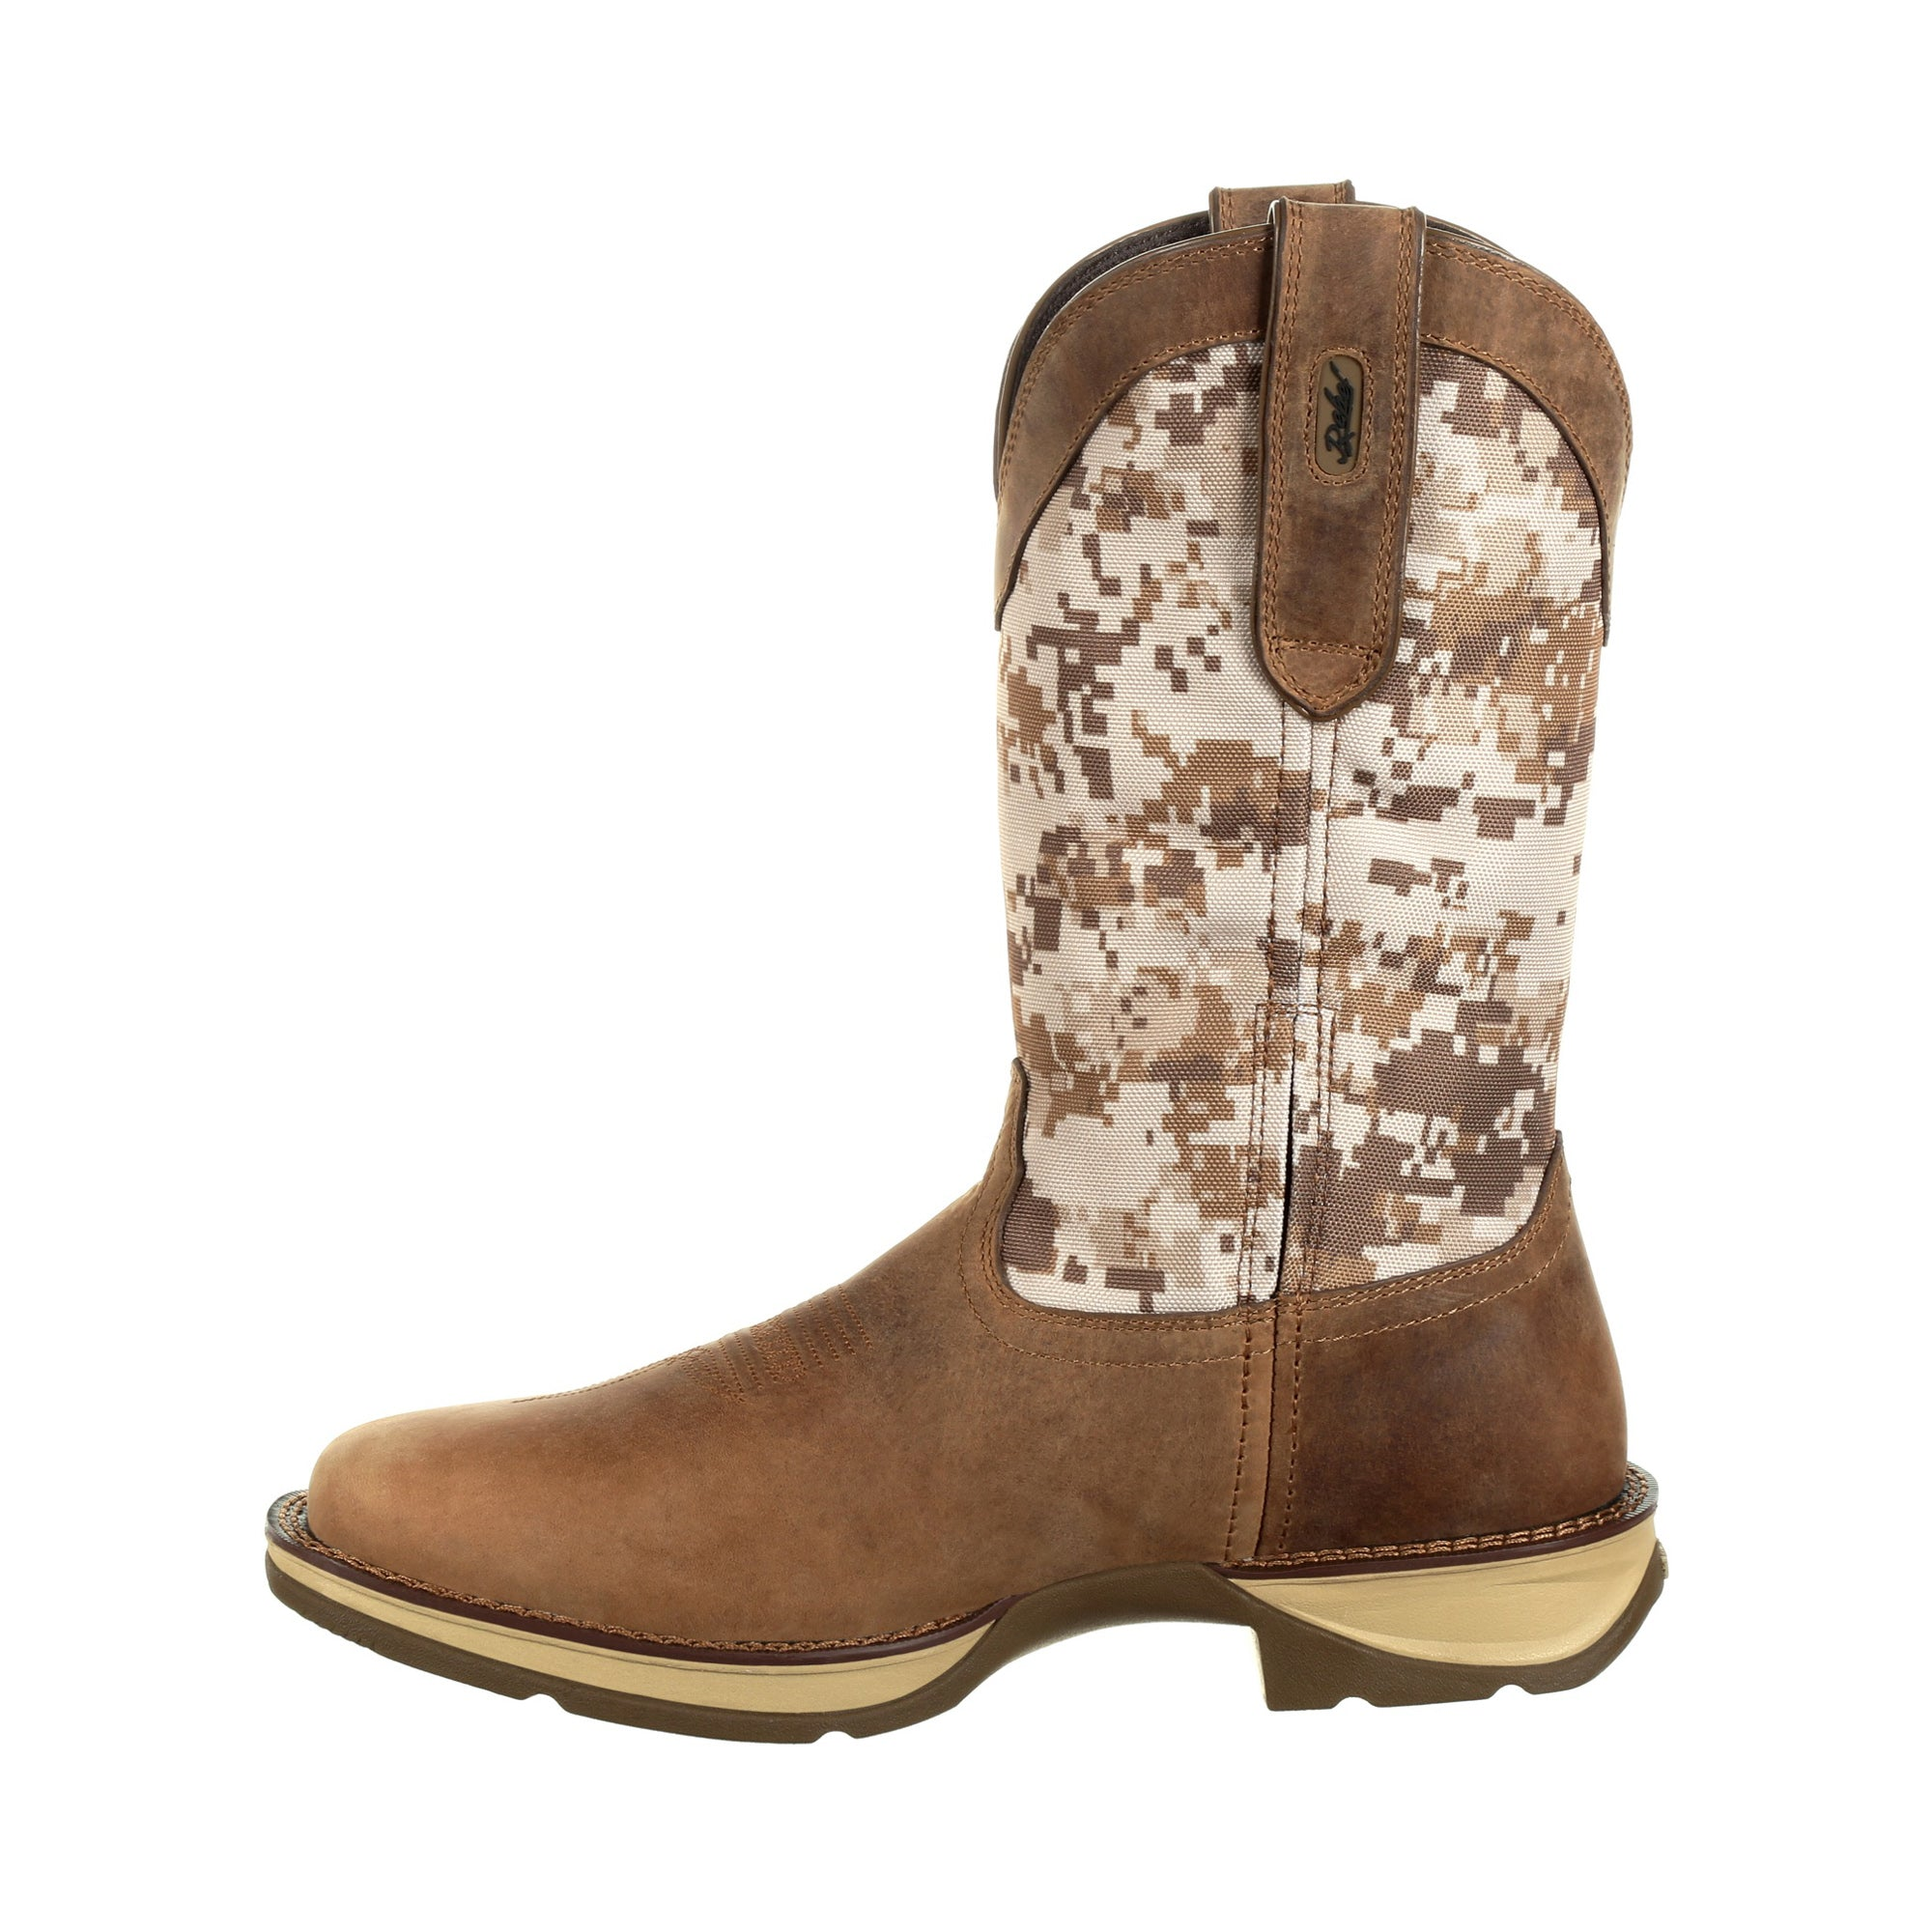 327f2217bf2 Durango Mens Dusty/Camo Leather Pull-On Rebel Cowboy Boots – The ...